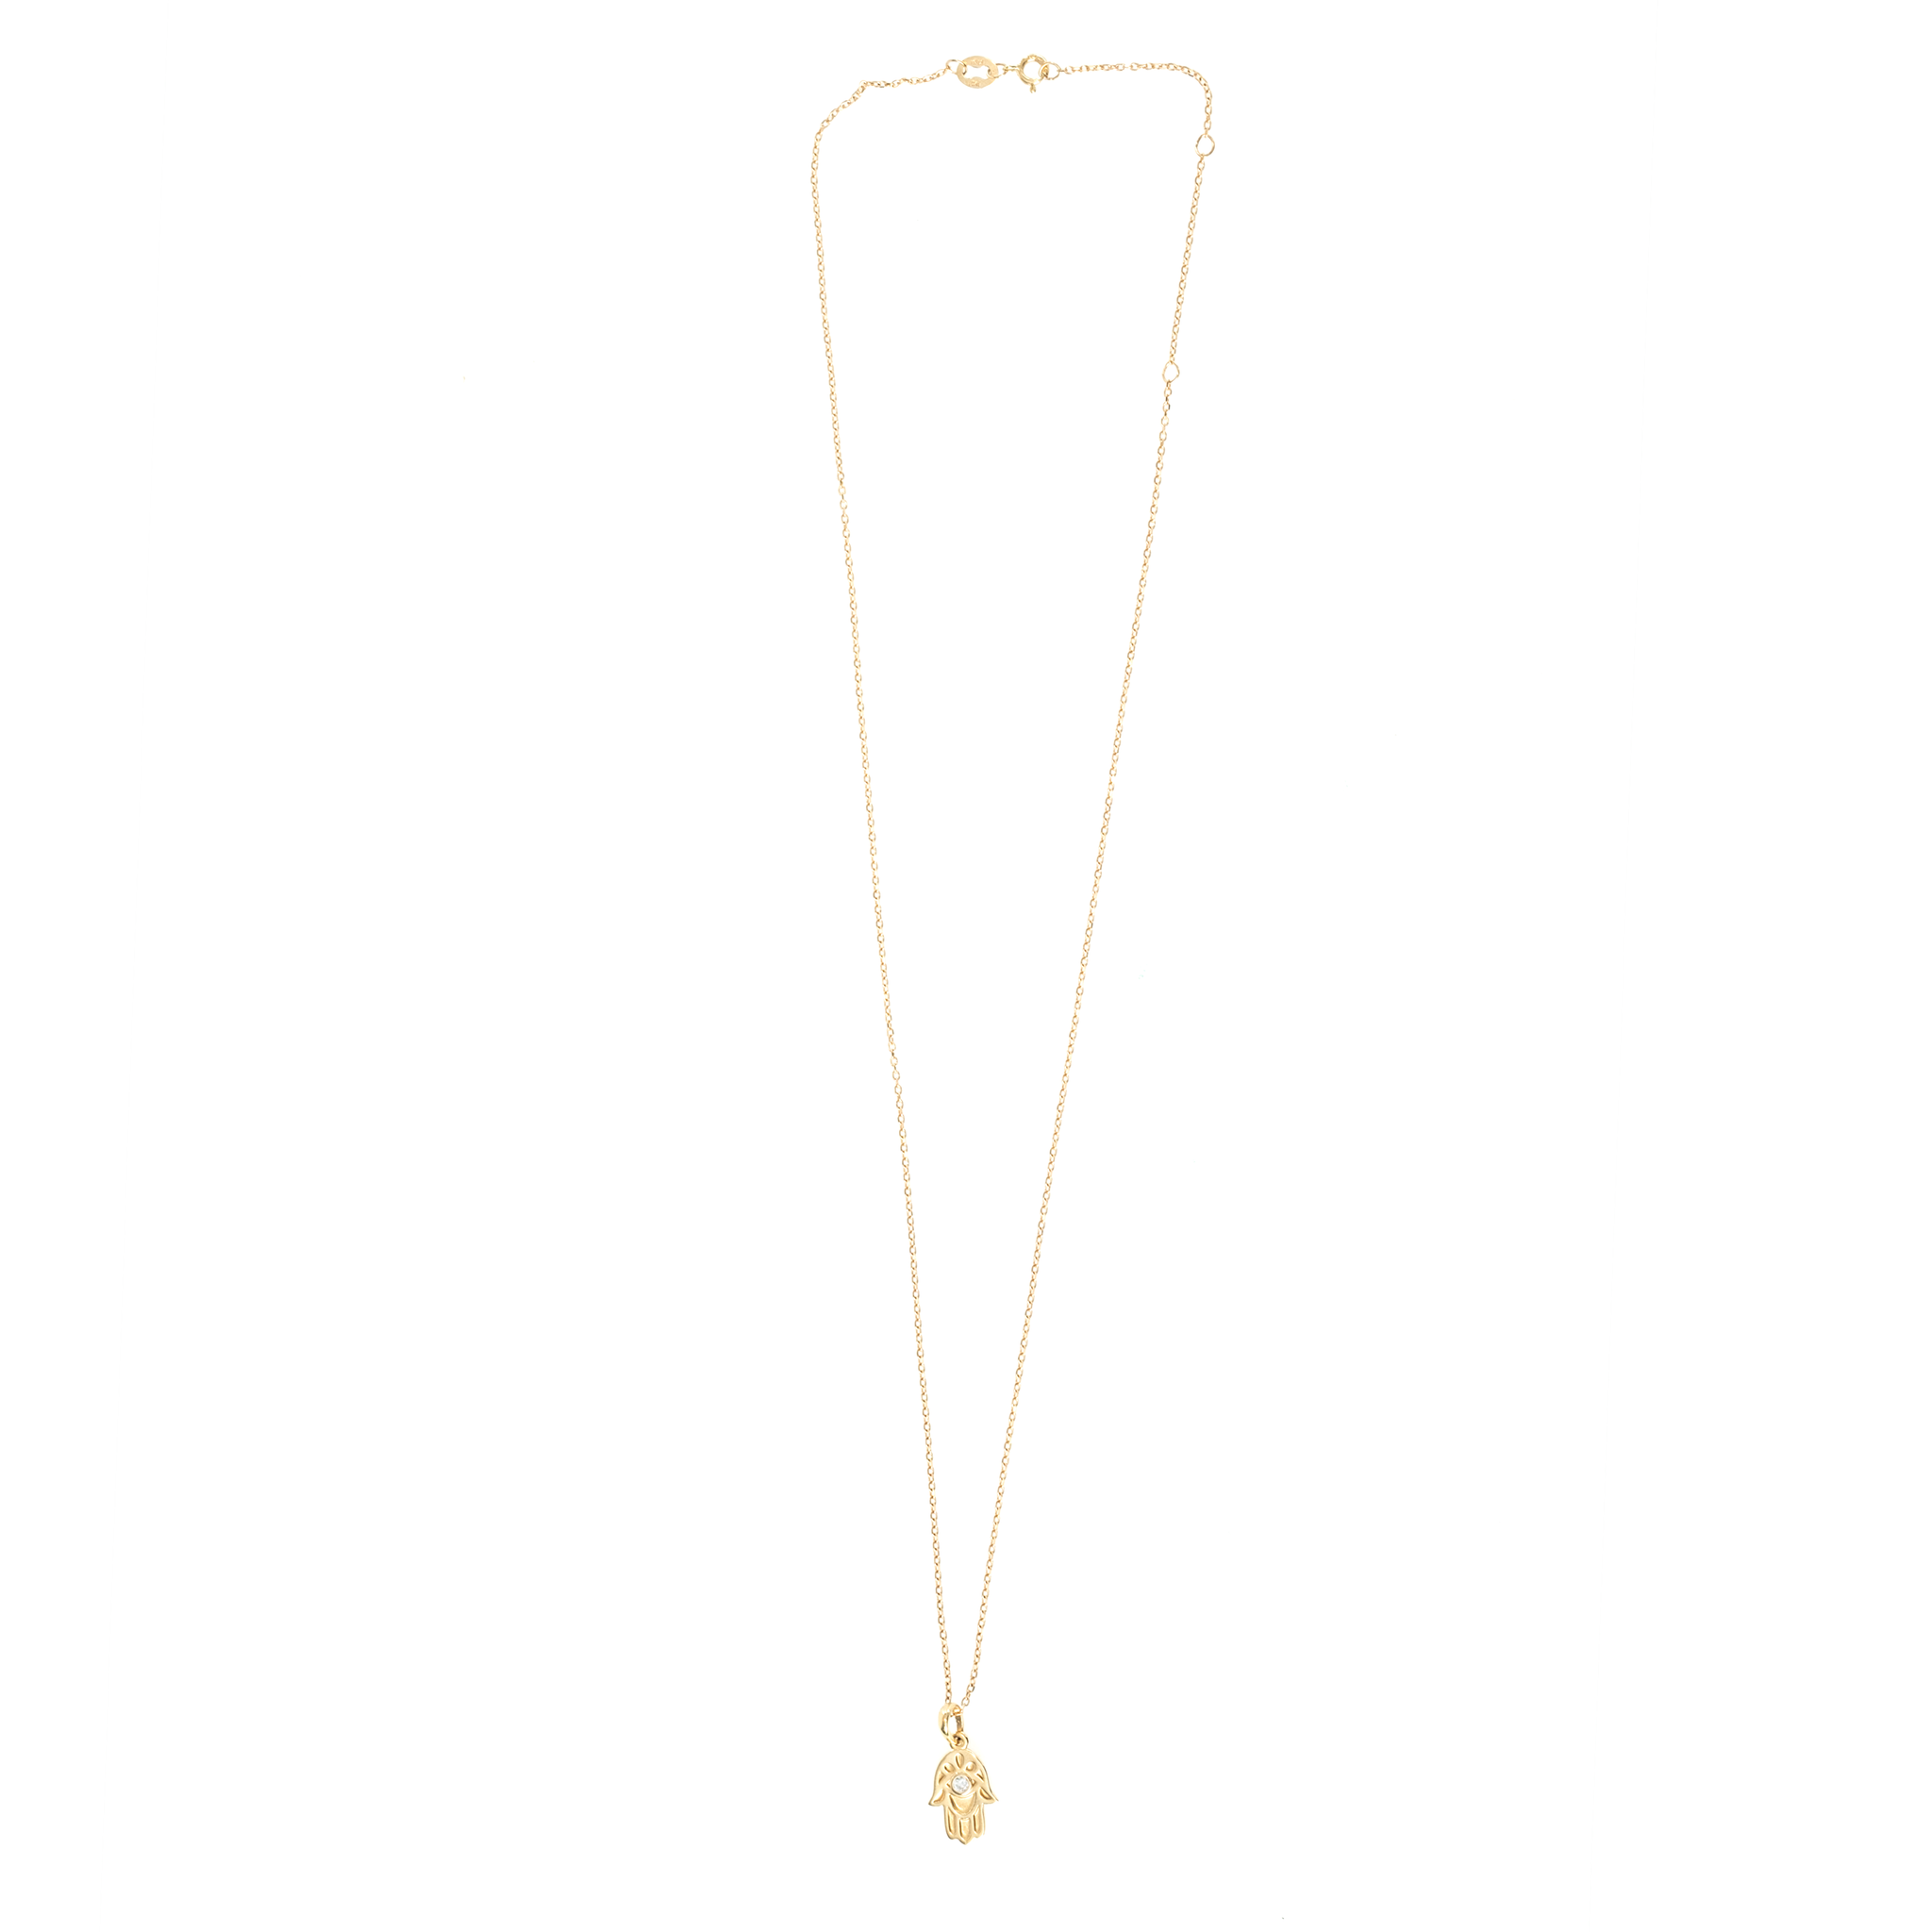 14K GOLD DIAMOND HAMSA NECKLACE